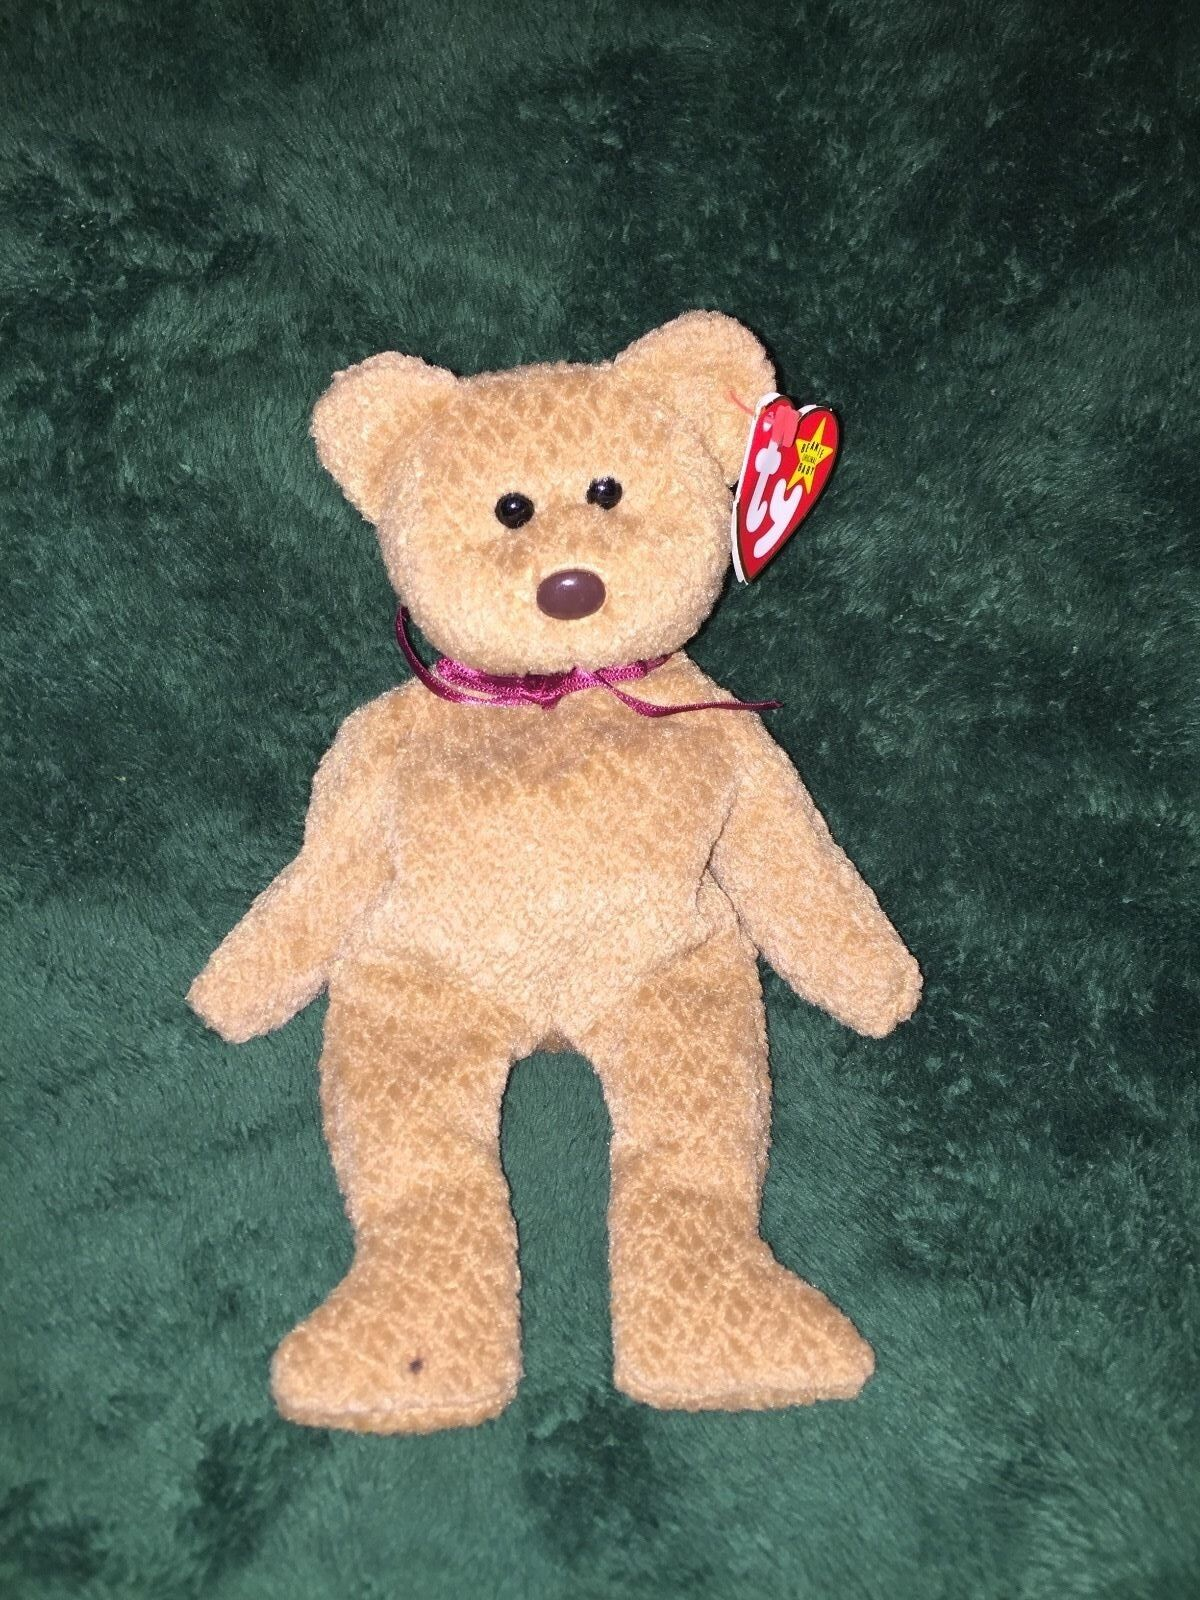 Rare     TY BEANIE BABY CURLY BEAR 1993 STYLE 4052 WITH MULTIPLE ERRORS 806752